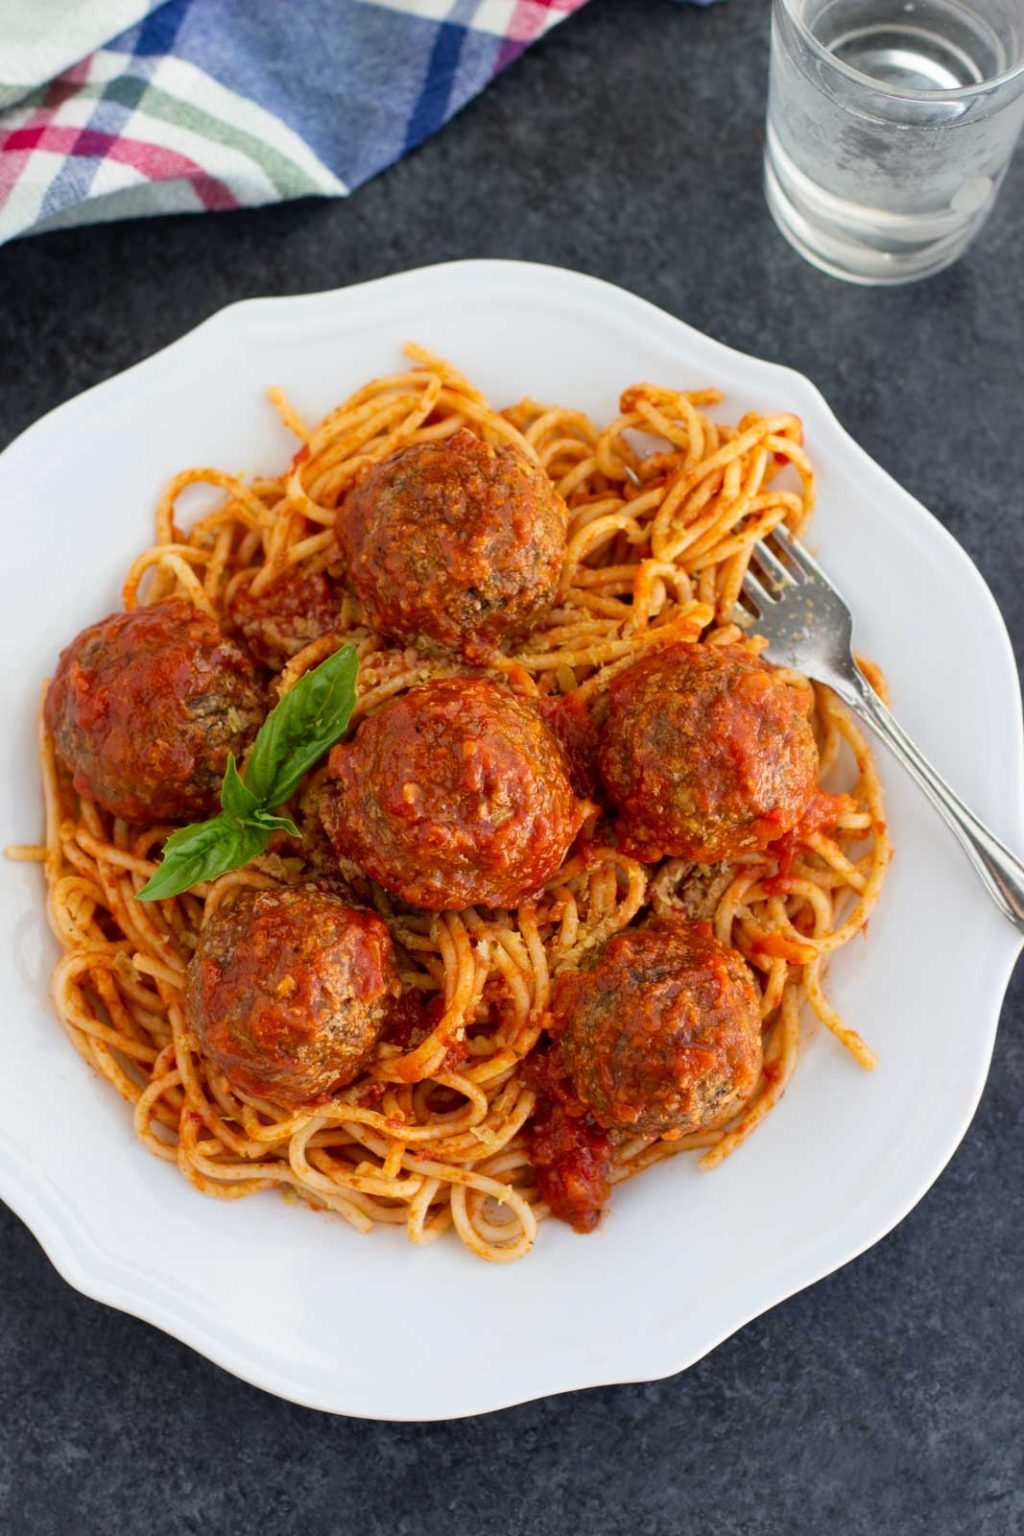 A white plate filled with vegan meatballs and spaghetti on a dark background.